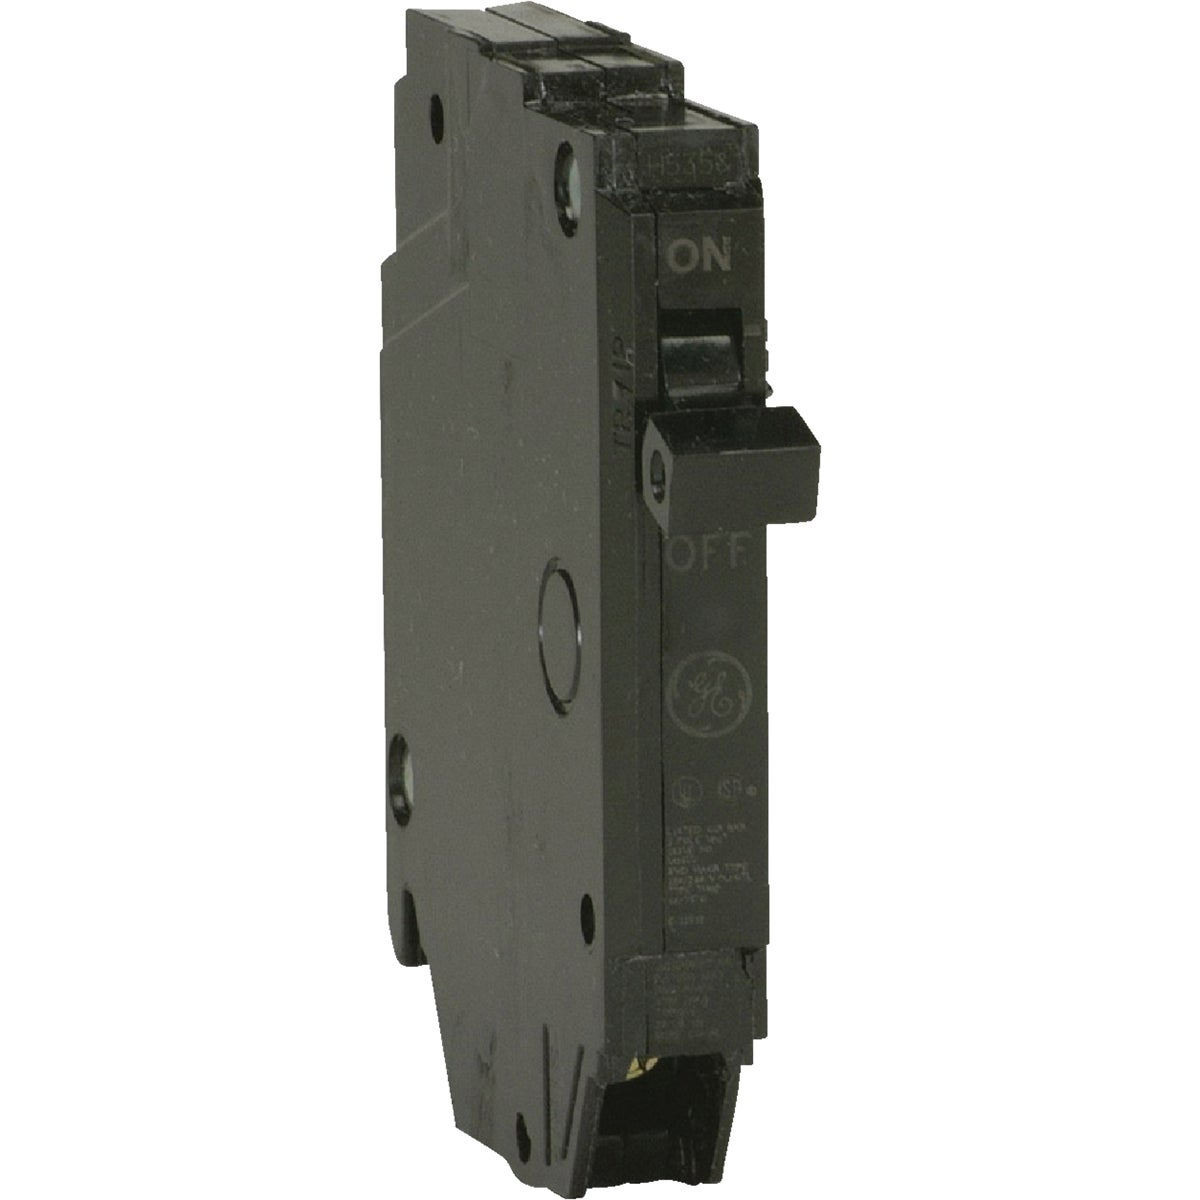 20A SP CIRCUIT BREAKER - THQP120 by G E Industrial